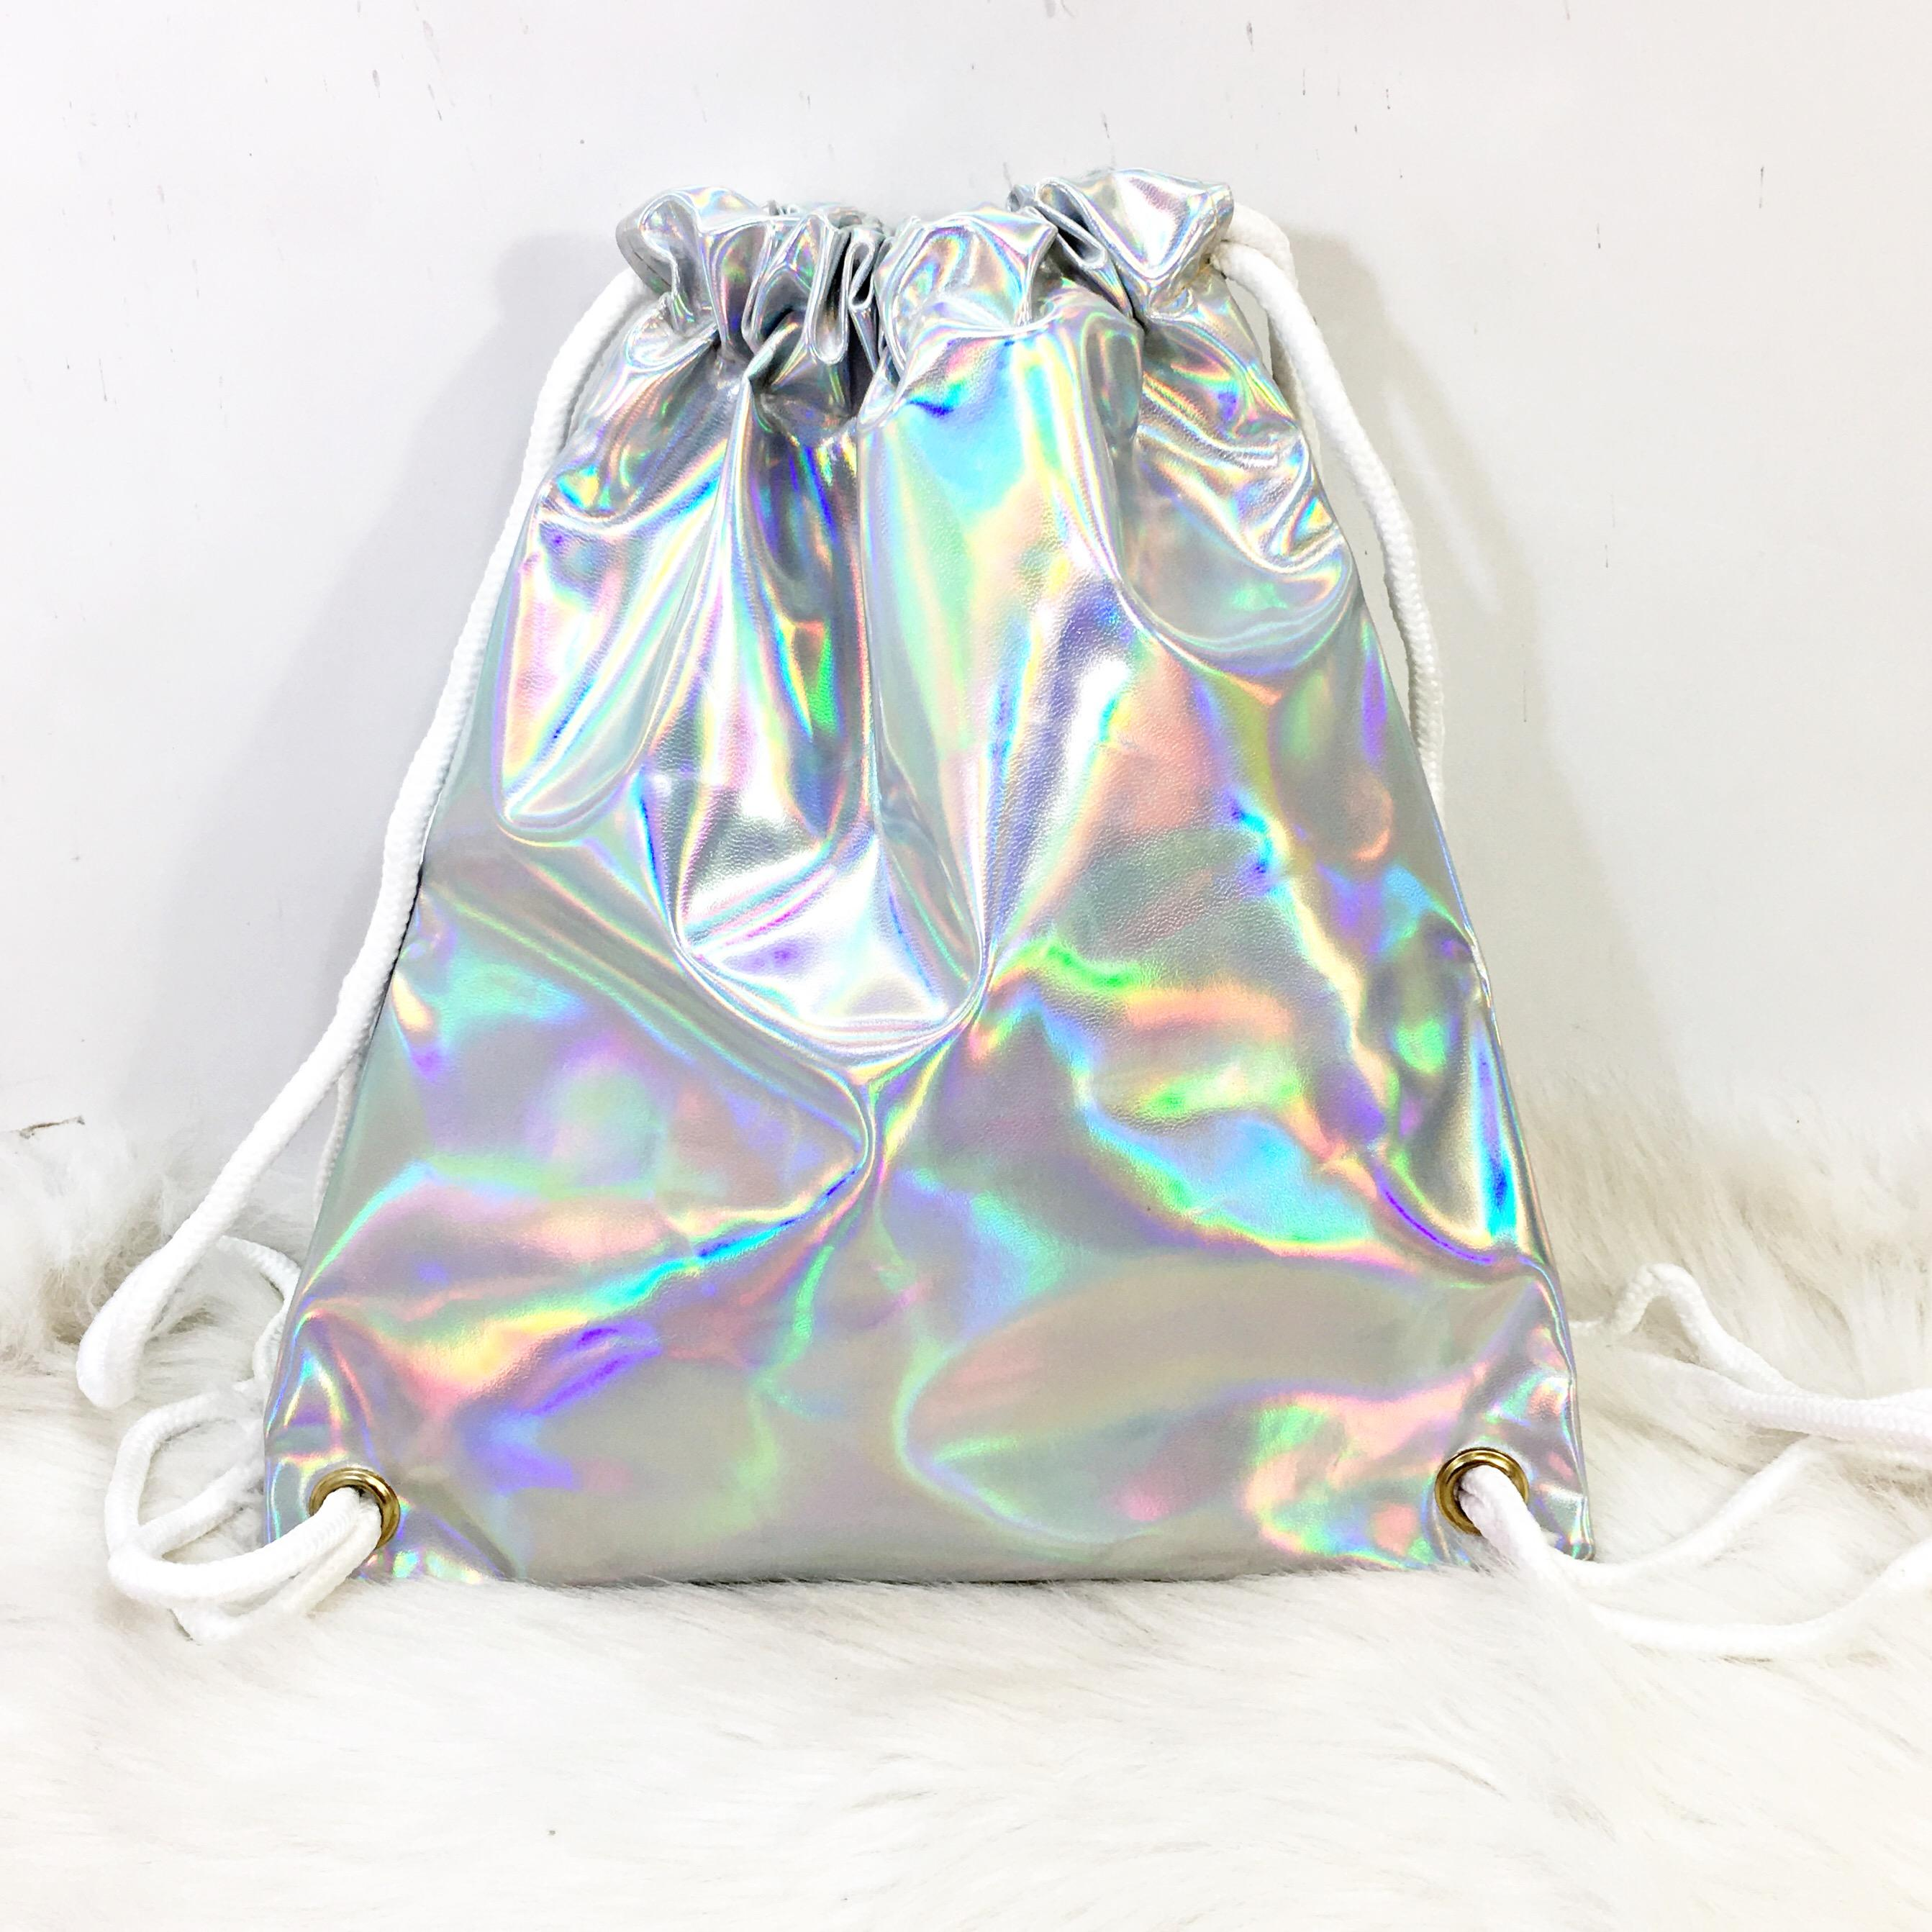 Stringbag Hologram